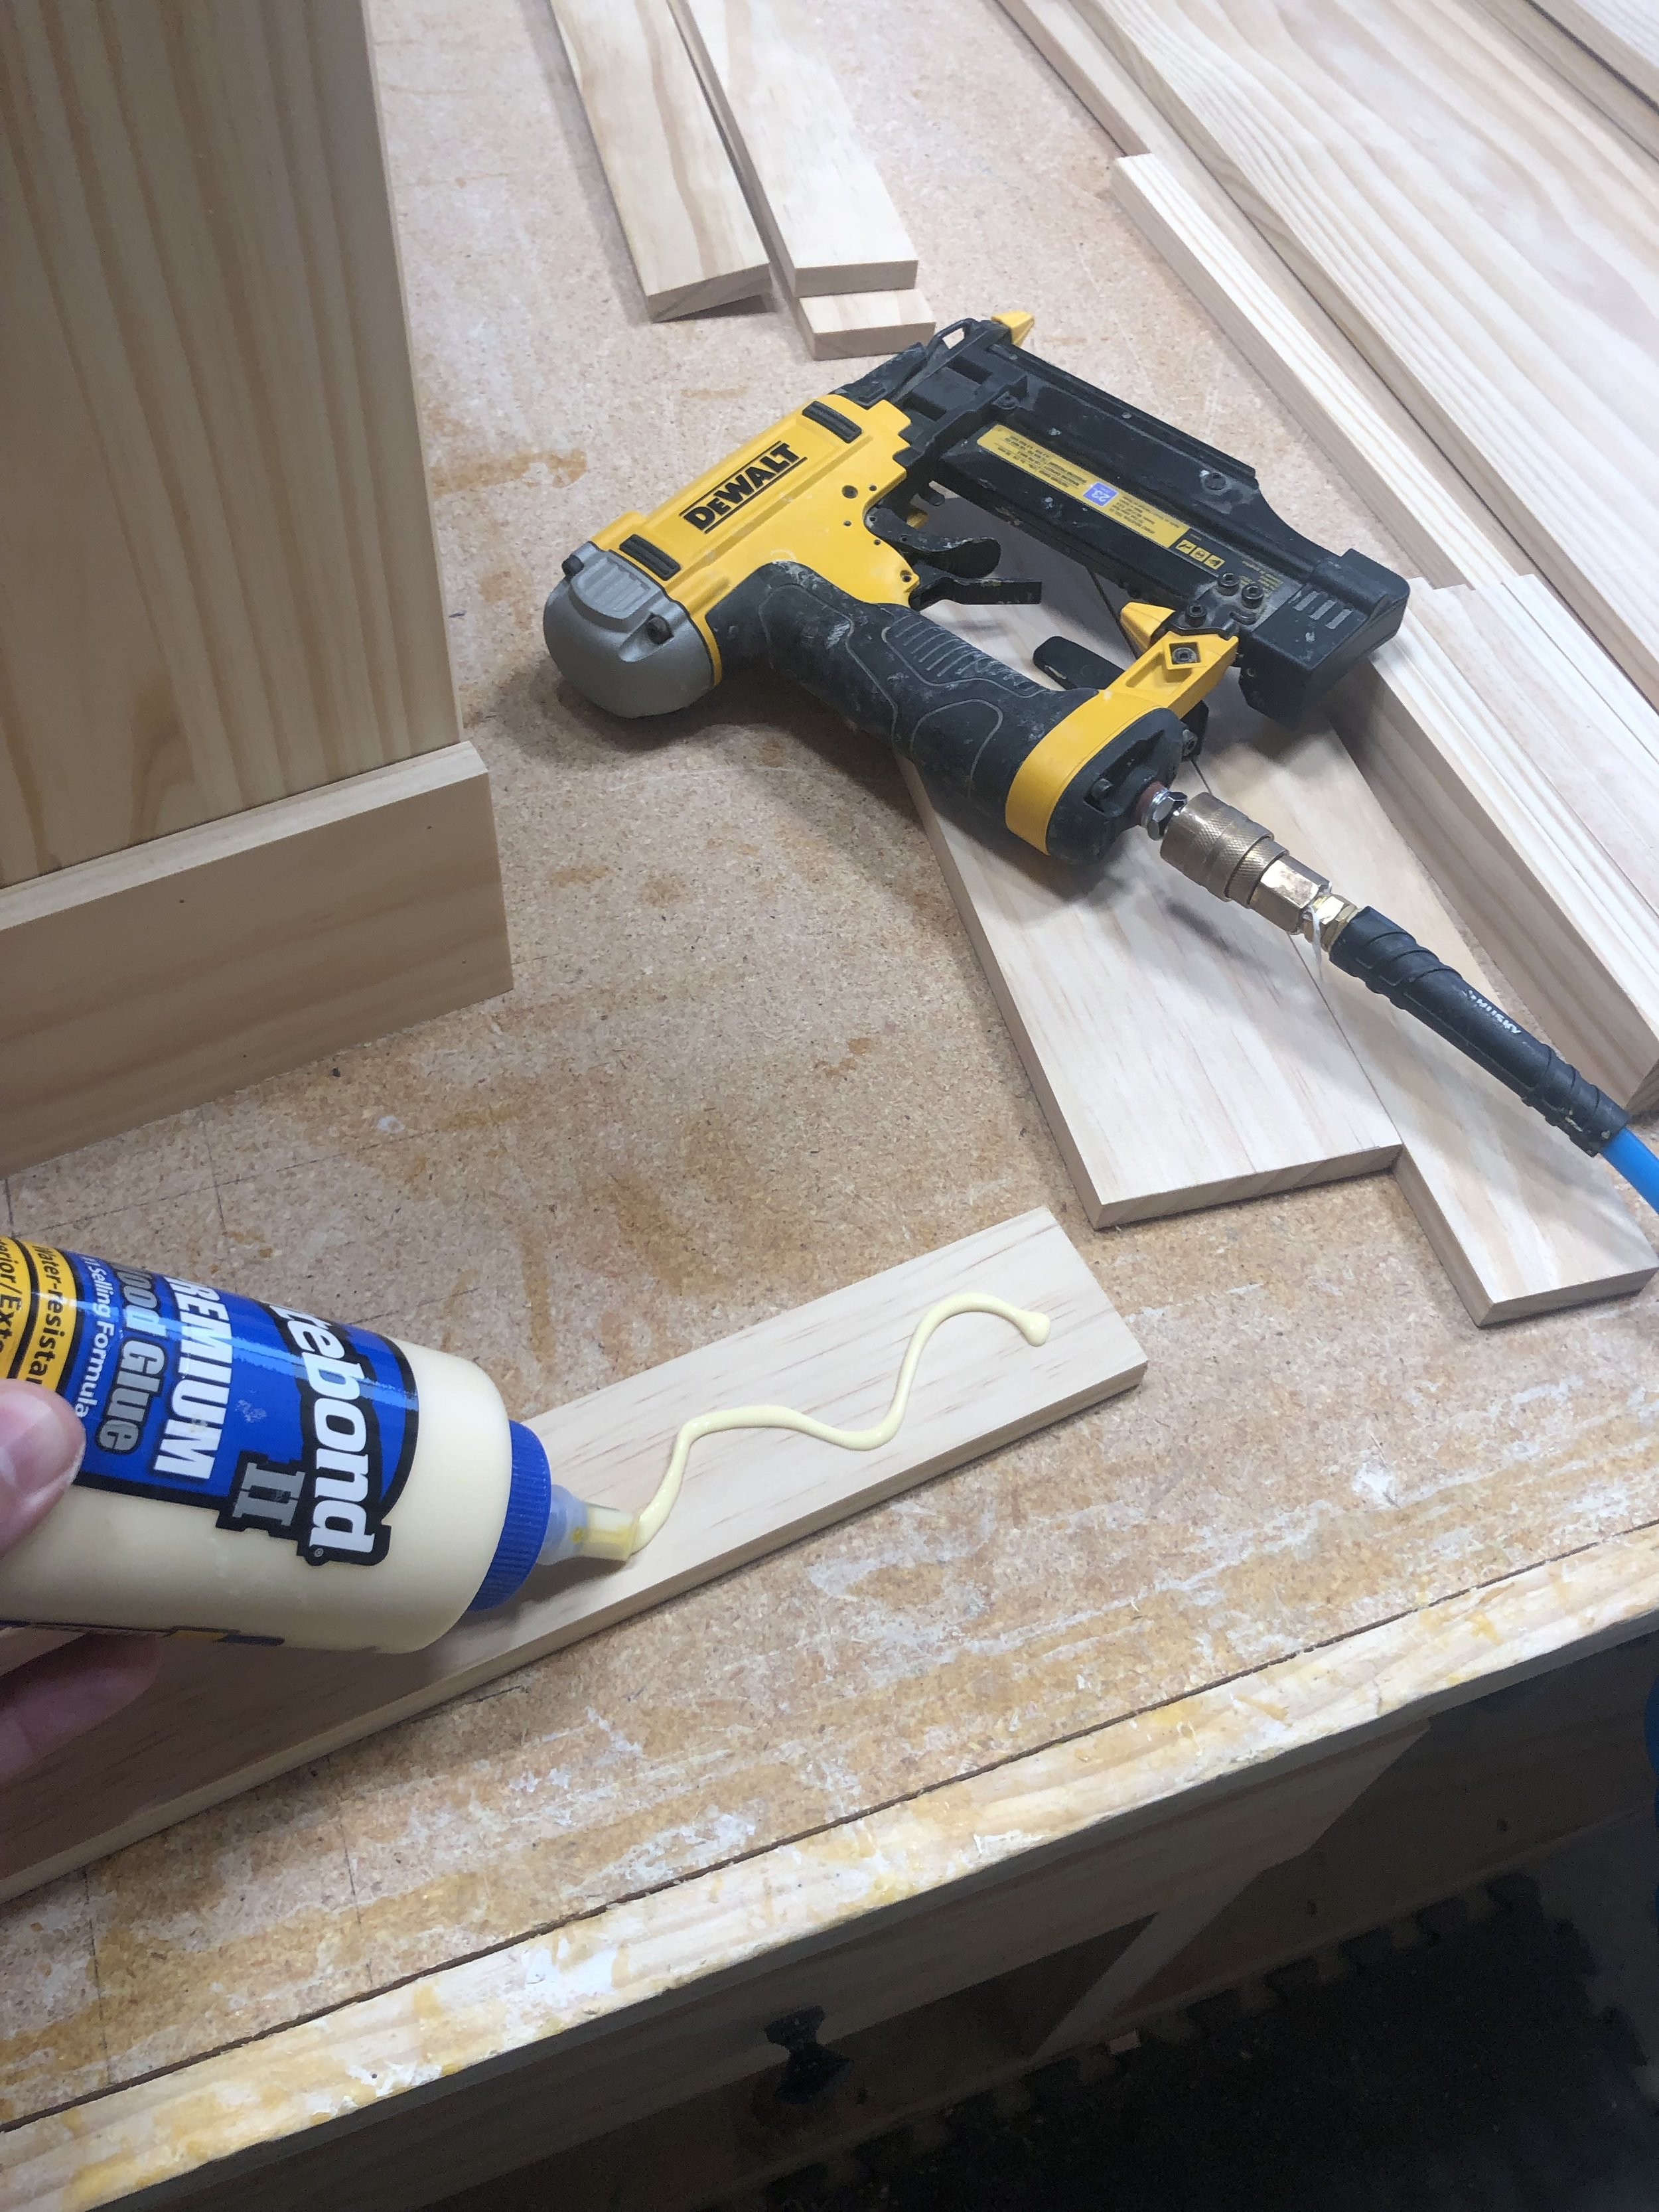 Throughout this project, each piece of wood will be attached with wood glue and a nail gun.